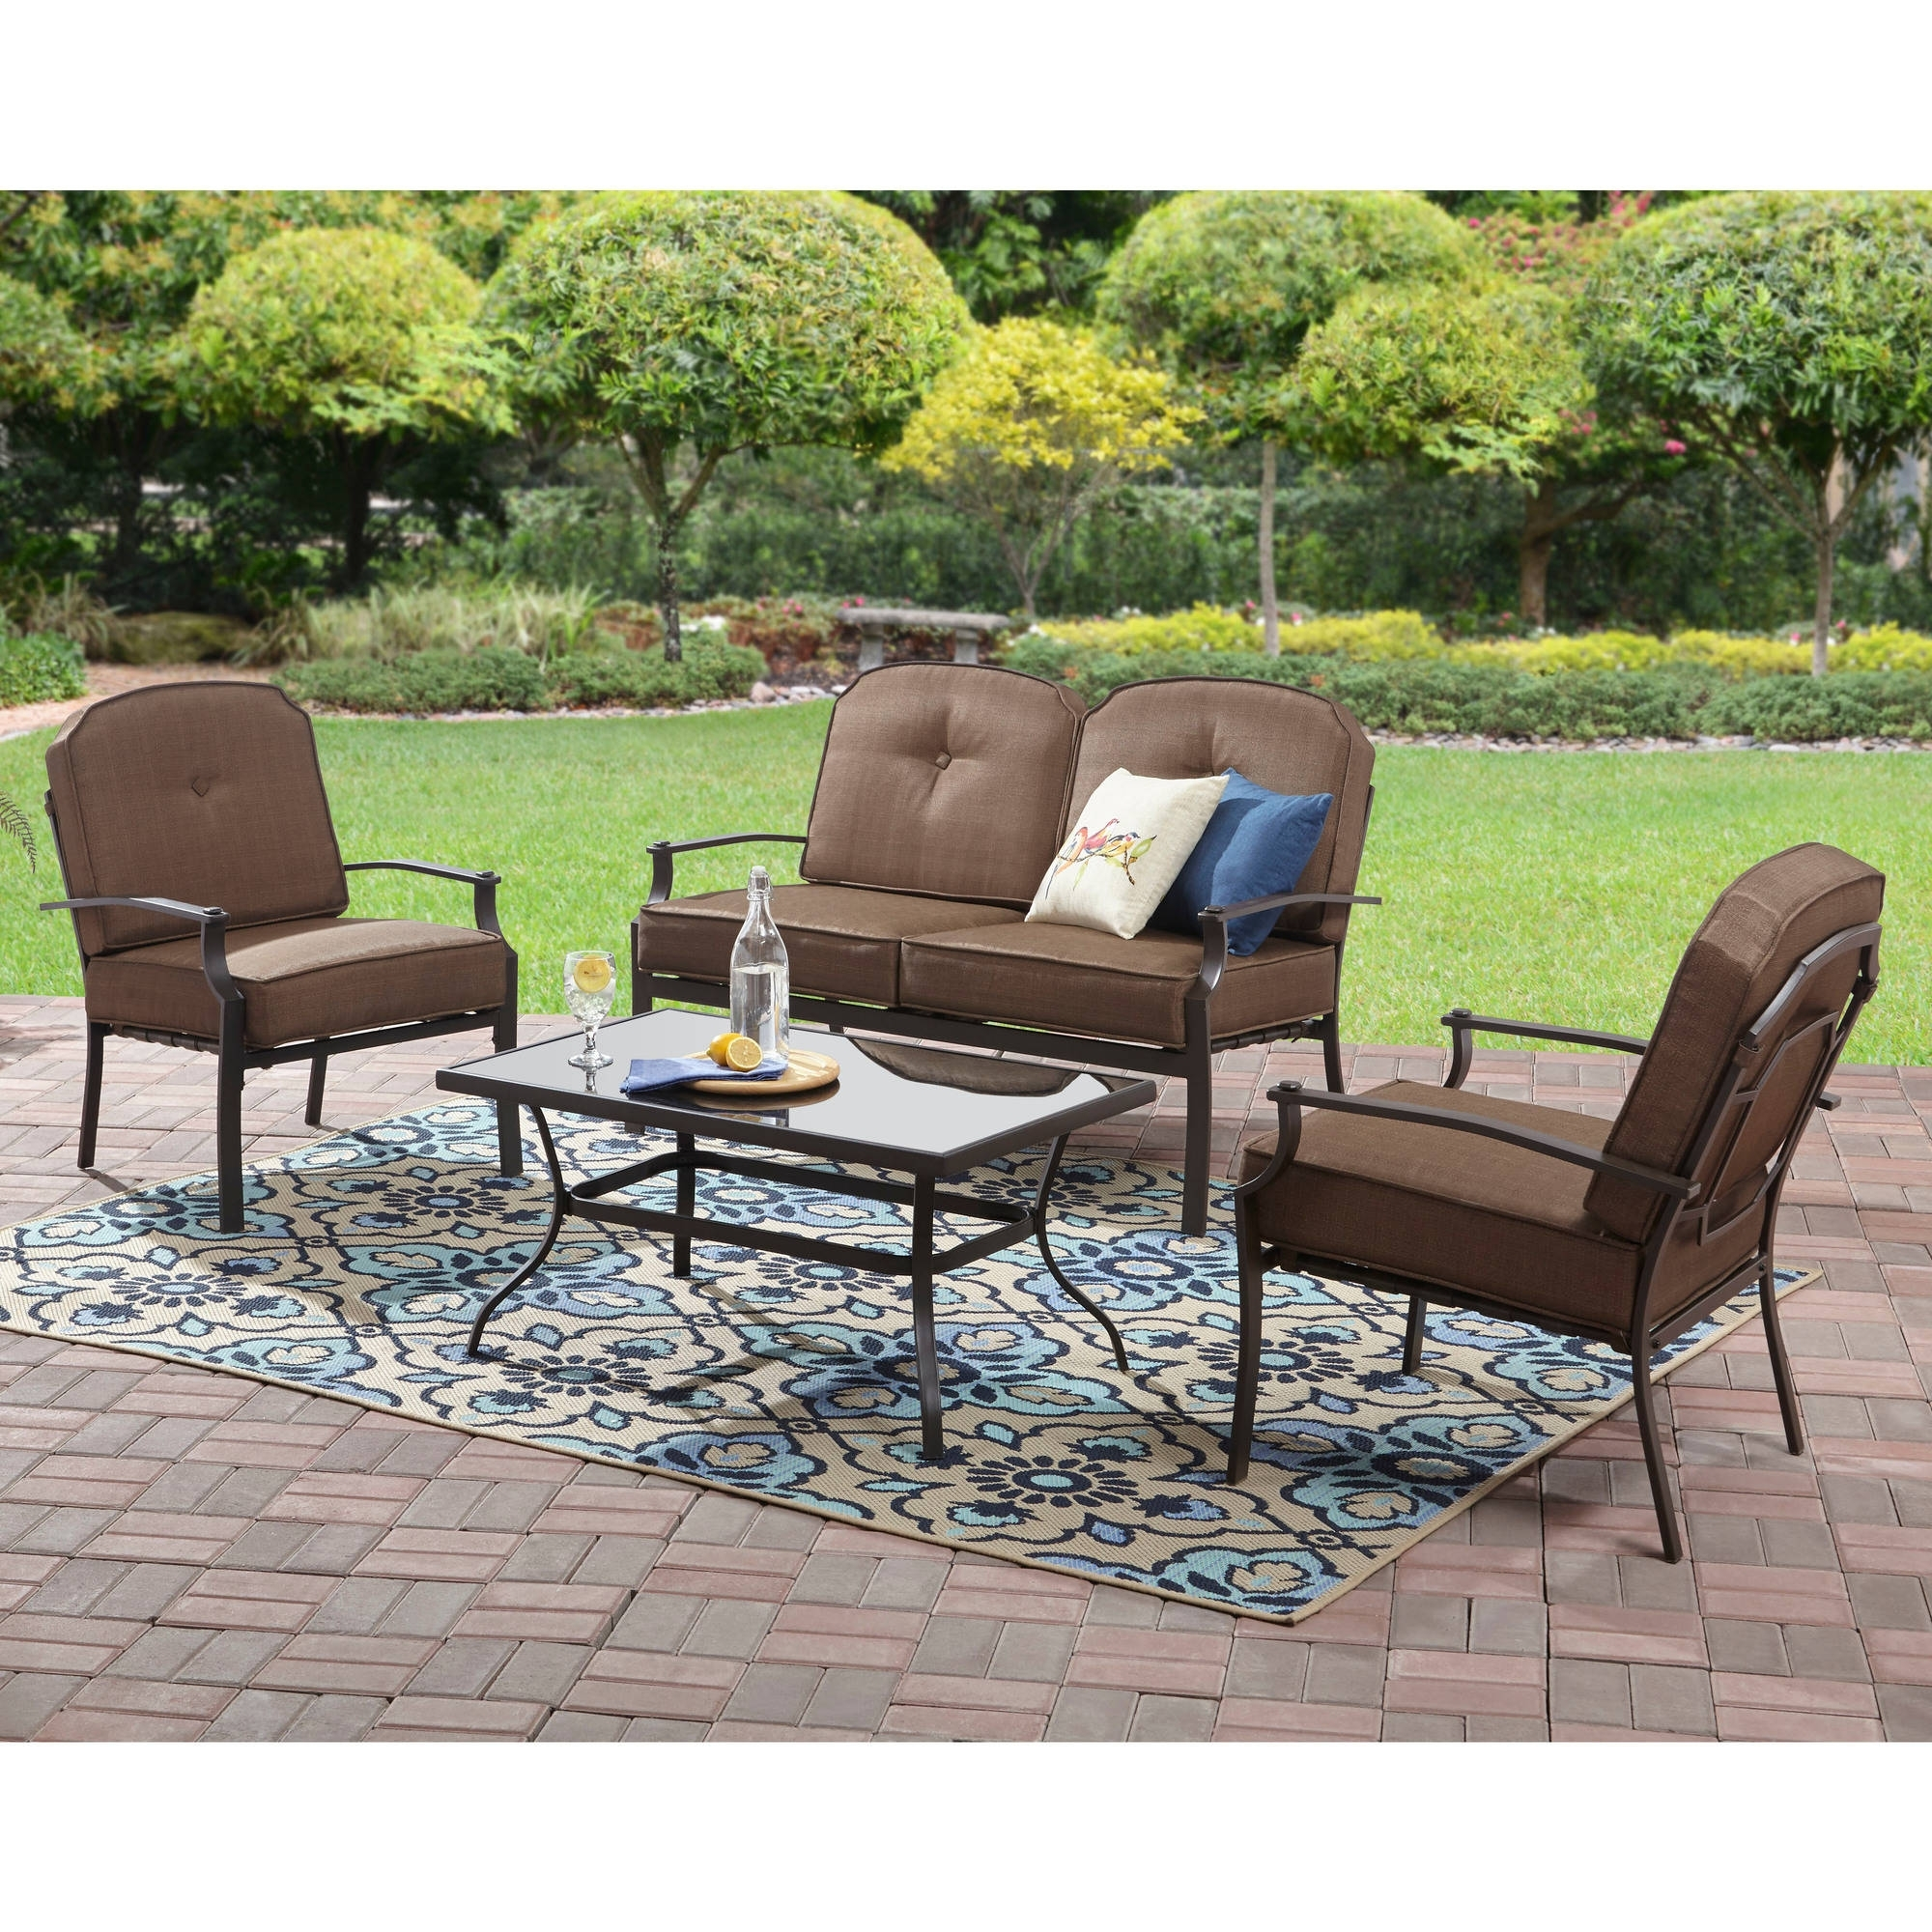 Patio Conversation Sets Pertaining To Widely Used Mainstays Spring Creek 5 Piece Patio Dining Set, Seats 4 – Walmart (View 9 of 20)